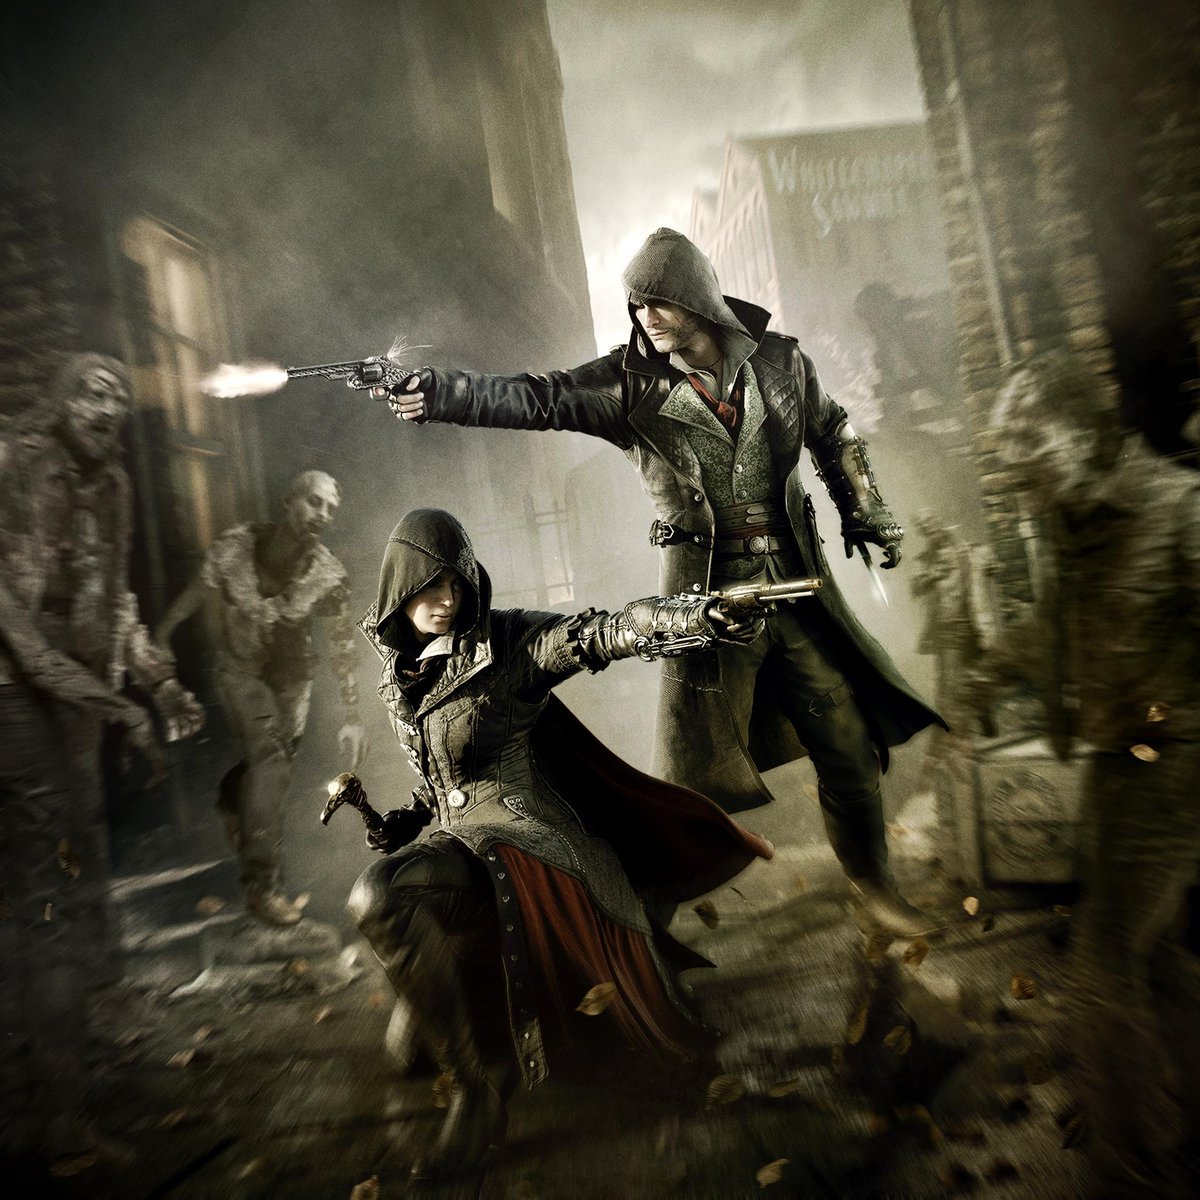 Assassin S Creed On Twitter Whether You Re Fighting Zombies Or